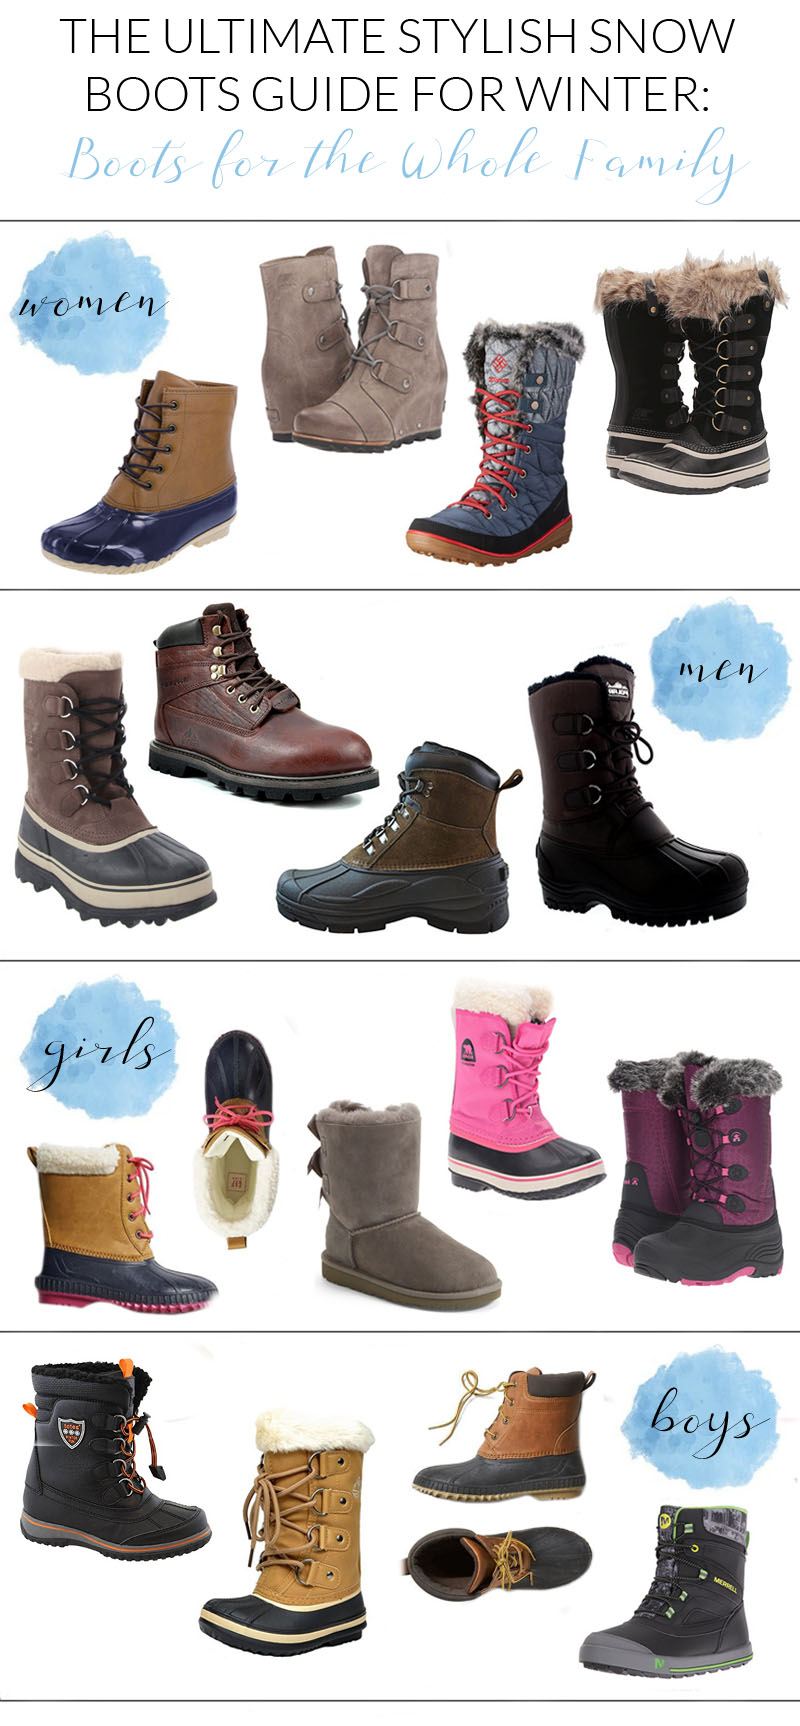 Stylish Snow Boots Guide For Winter